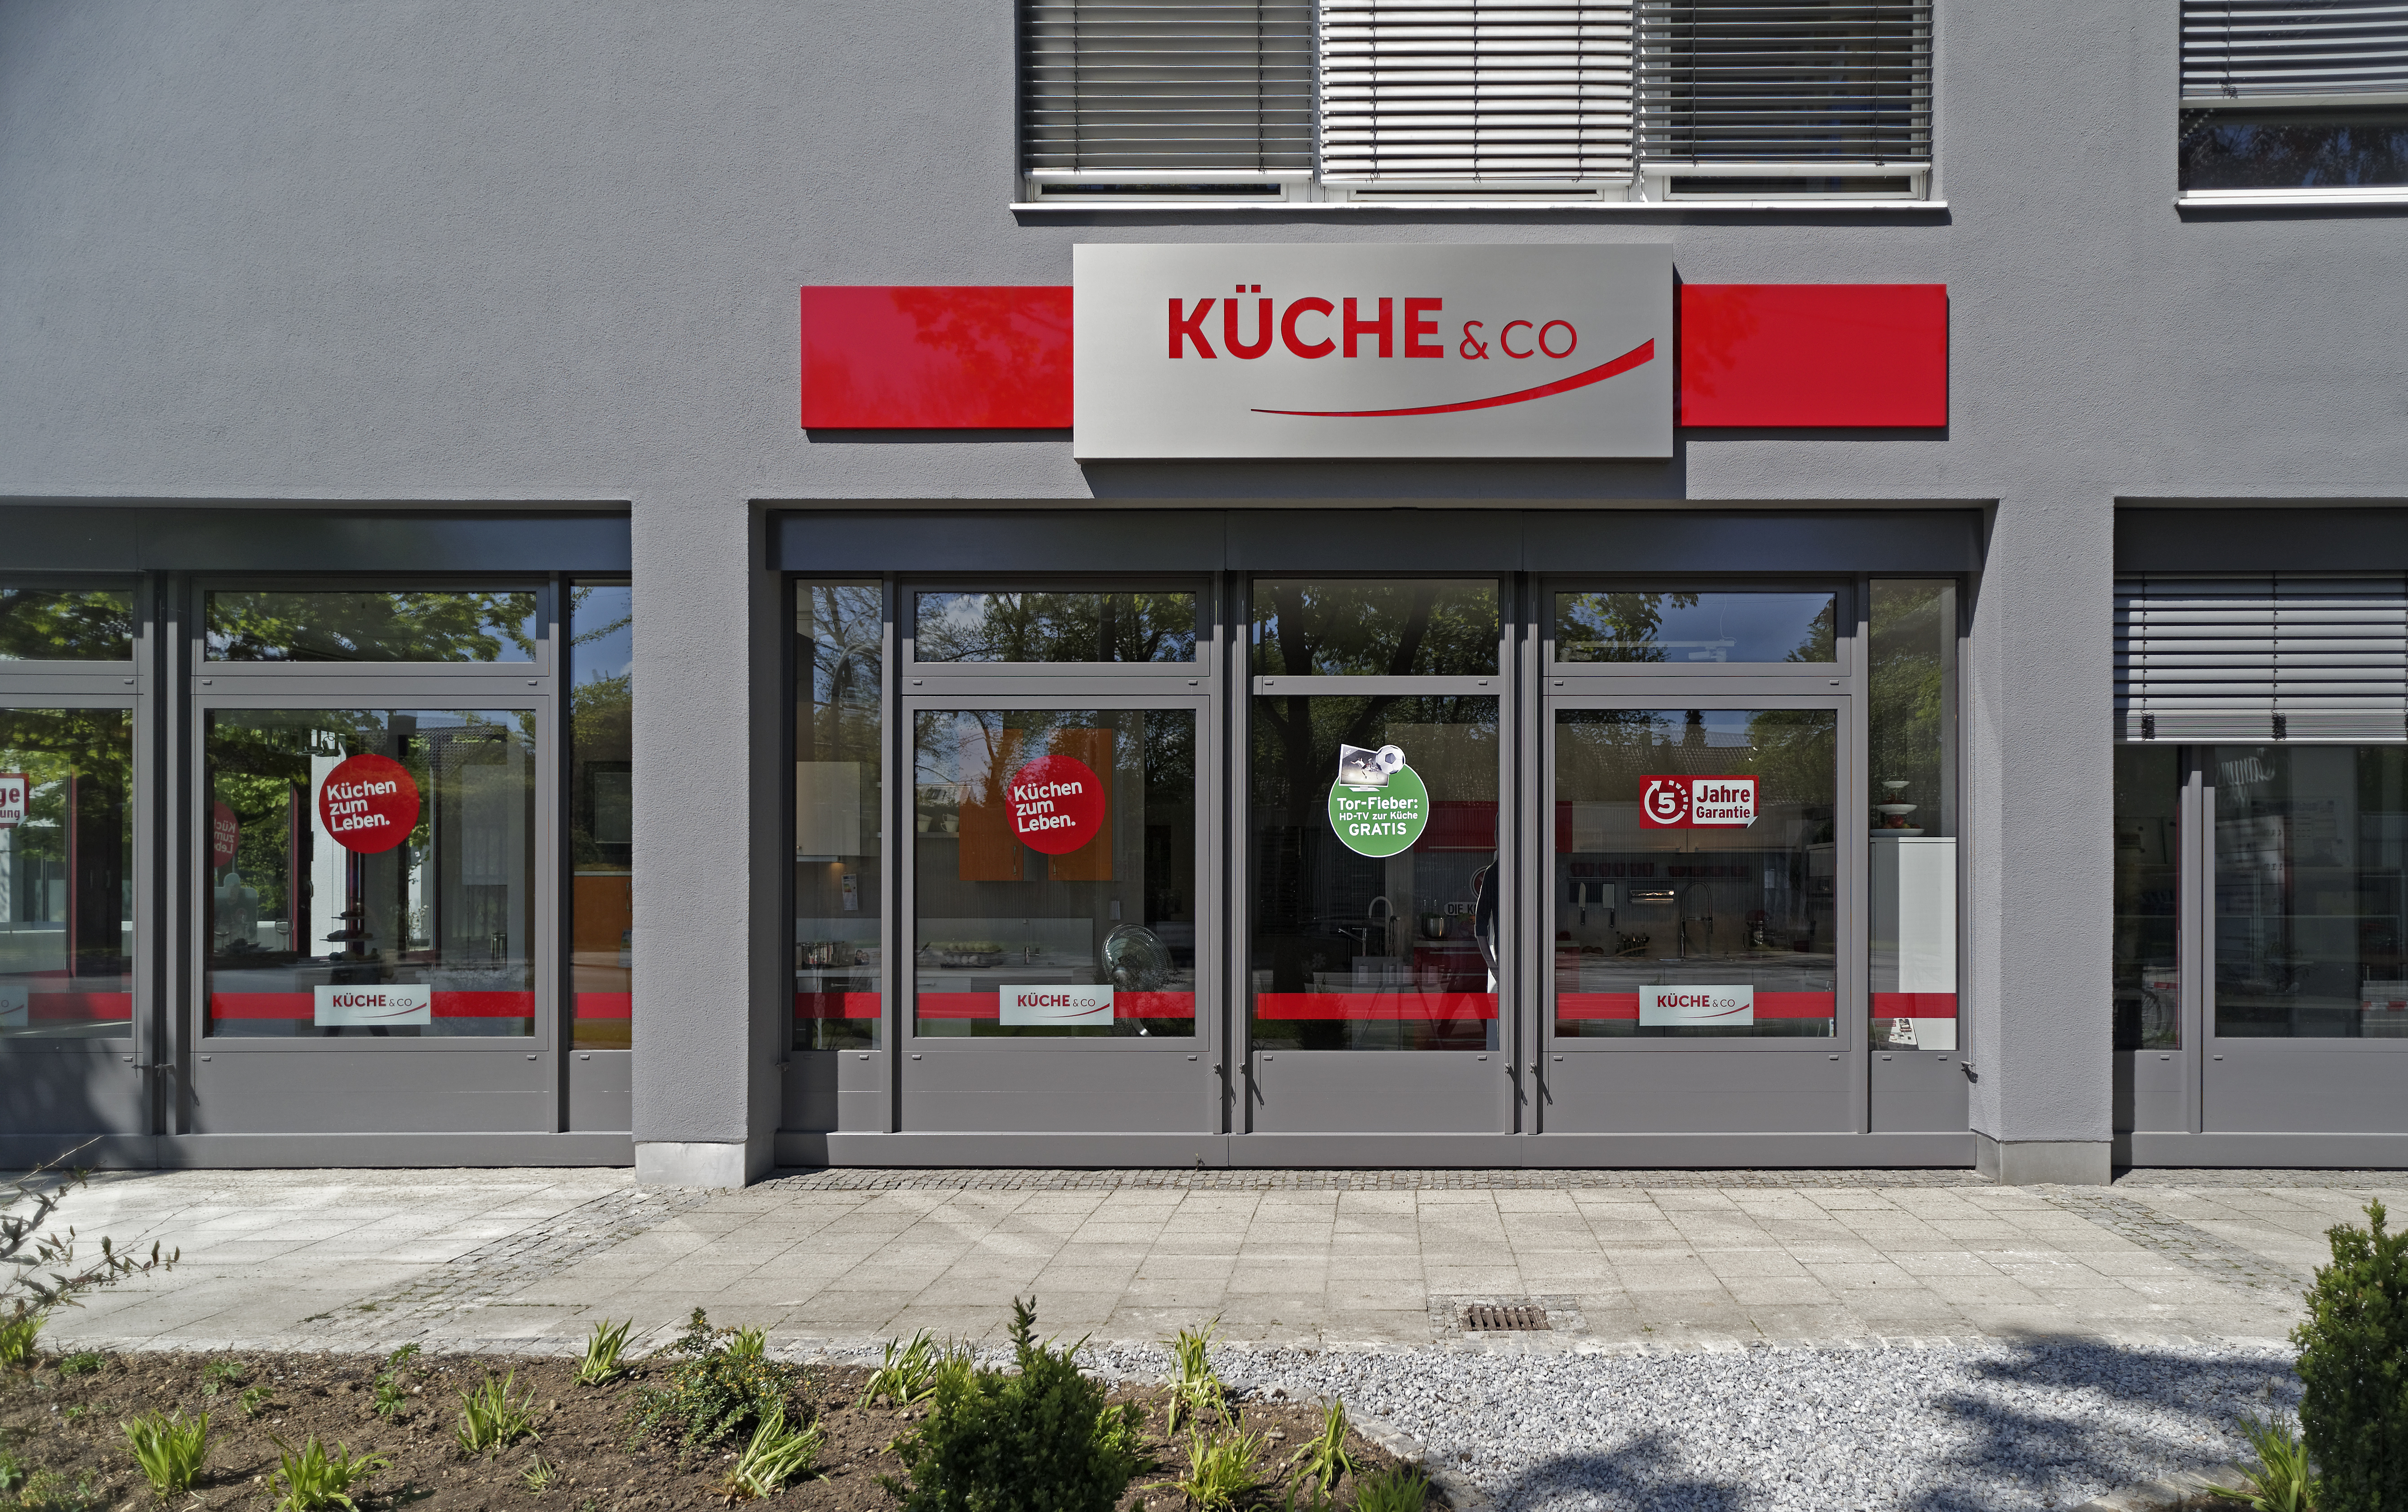 Kuche Co Kuchenstudio Munchen Pasing Kuche Co